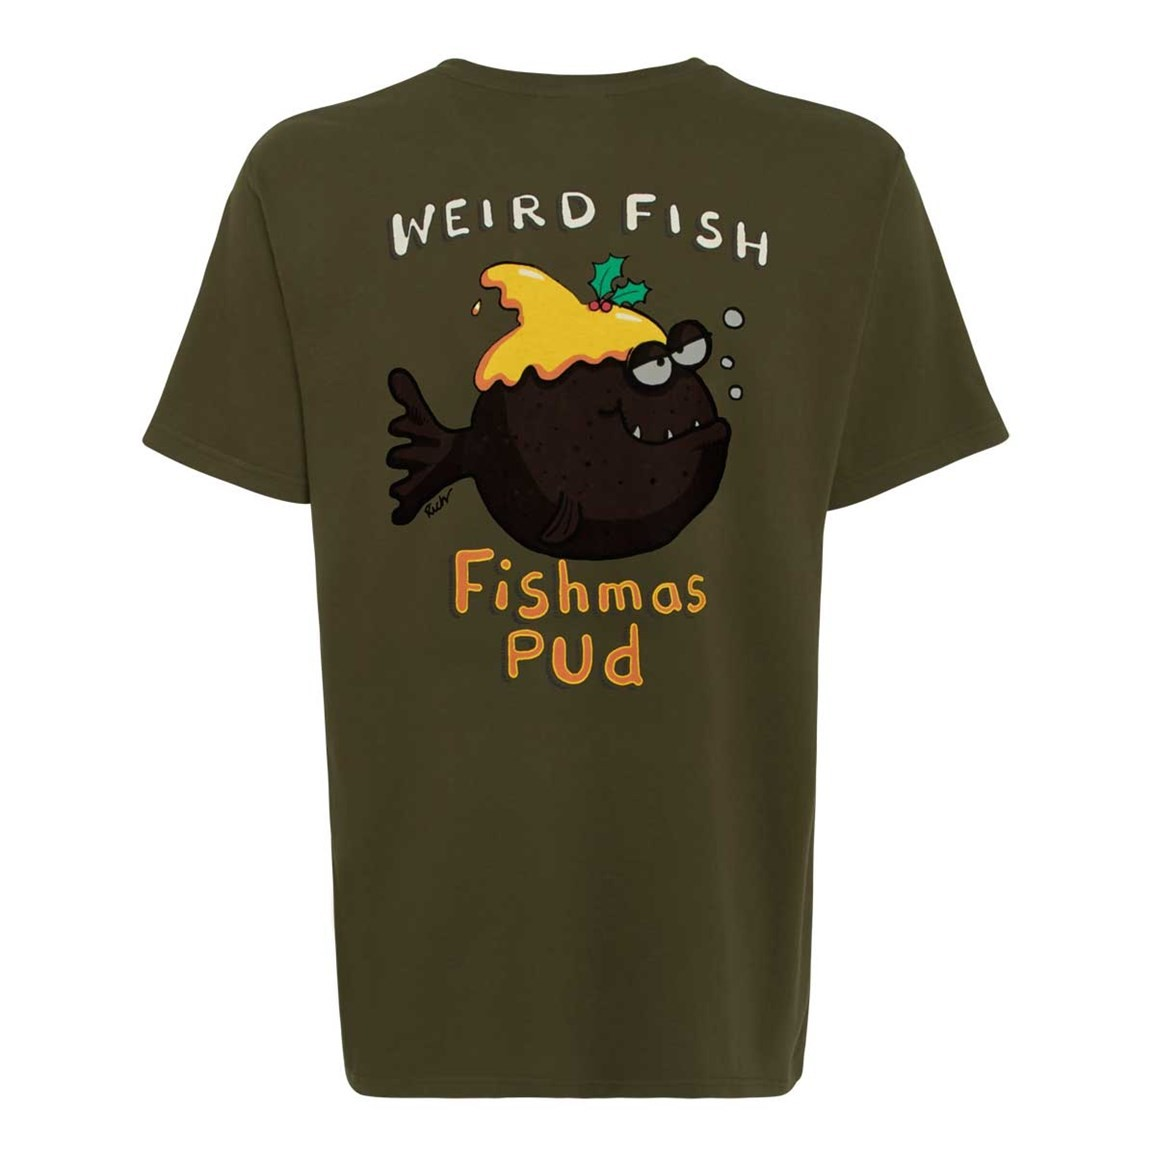 Weird Fish Fishmas Pud Printed Artist T-Shirt Olive Night